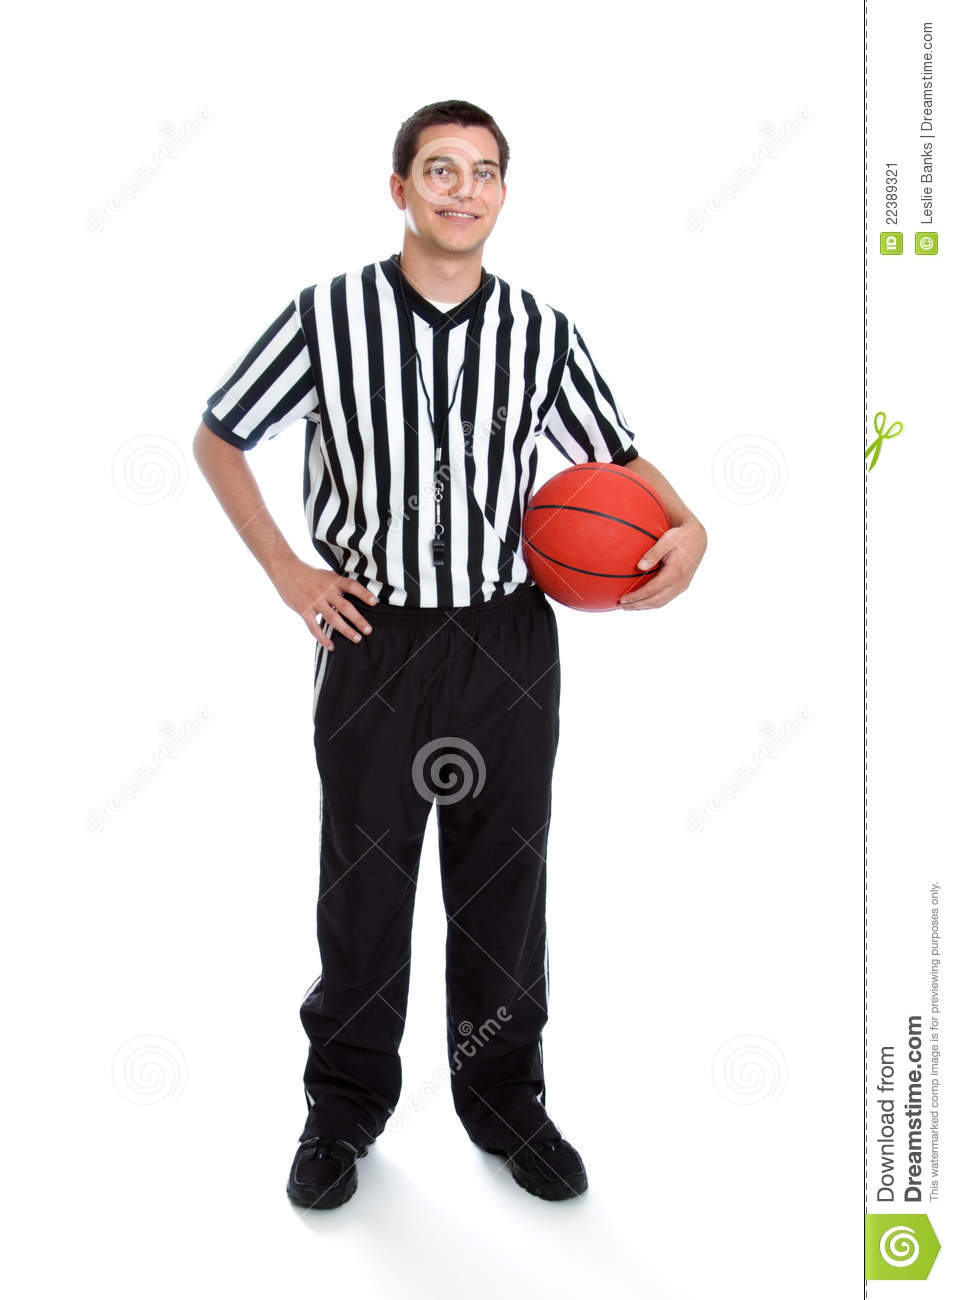 Teen Basketball Referee Stock Image - Image: 22389321